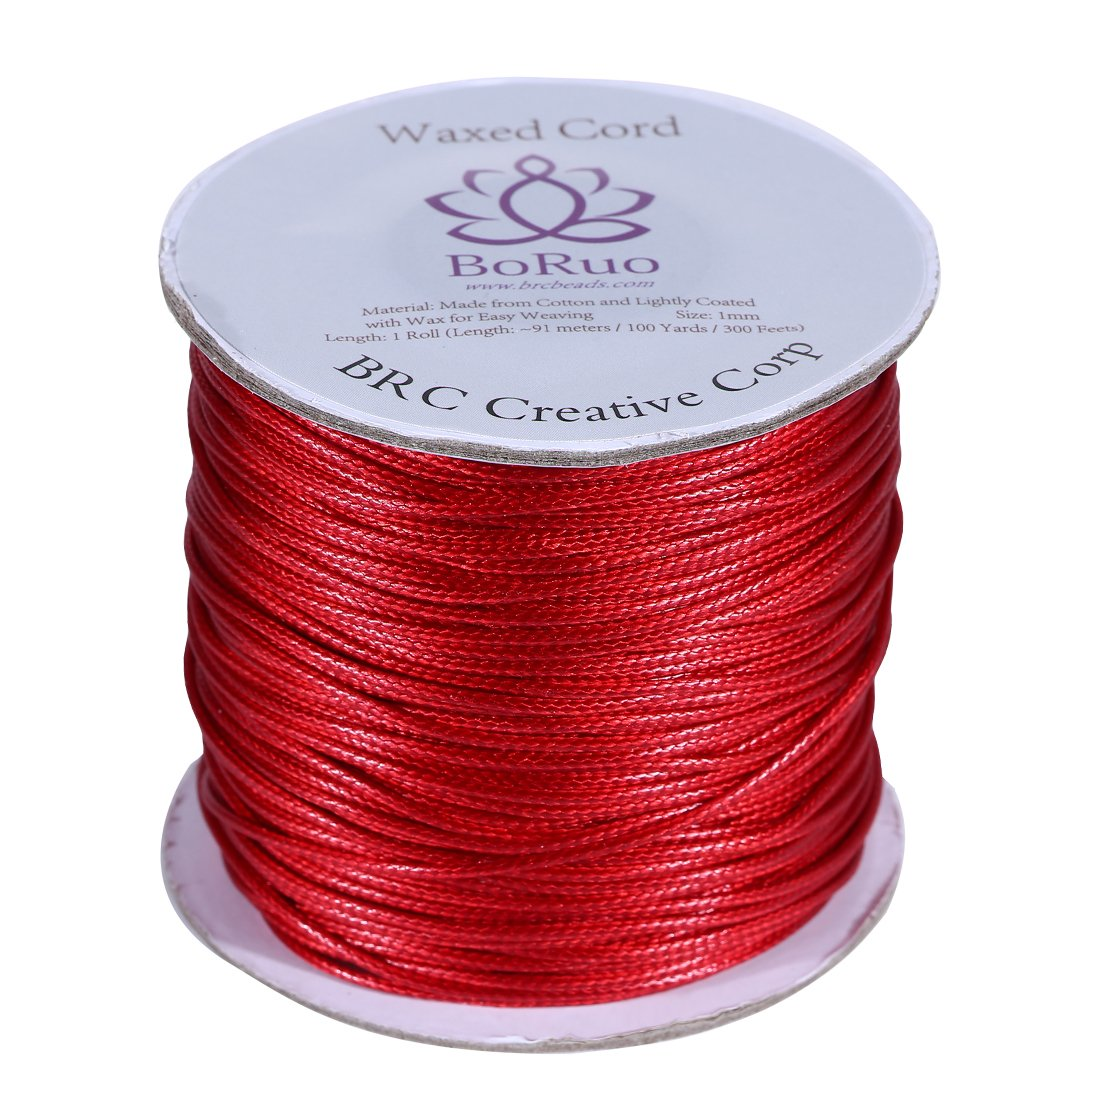 Boruo Brand 1mm Waxed Cotton Cord Beading Cord Waxed String Wax Cording Cord for Jewelry Making and Macrame Supplies 100 Yards Roll Spool Aquamarine Color Acrylic Jar BRC Creative Corp.